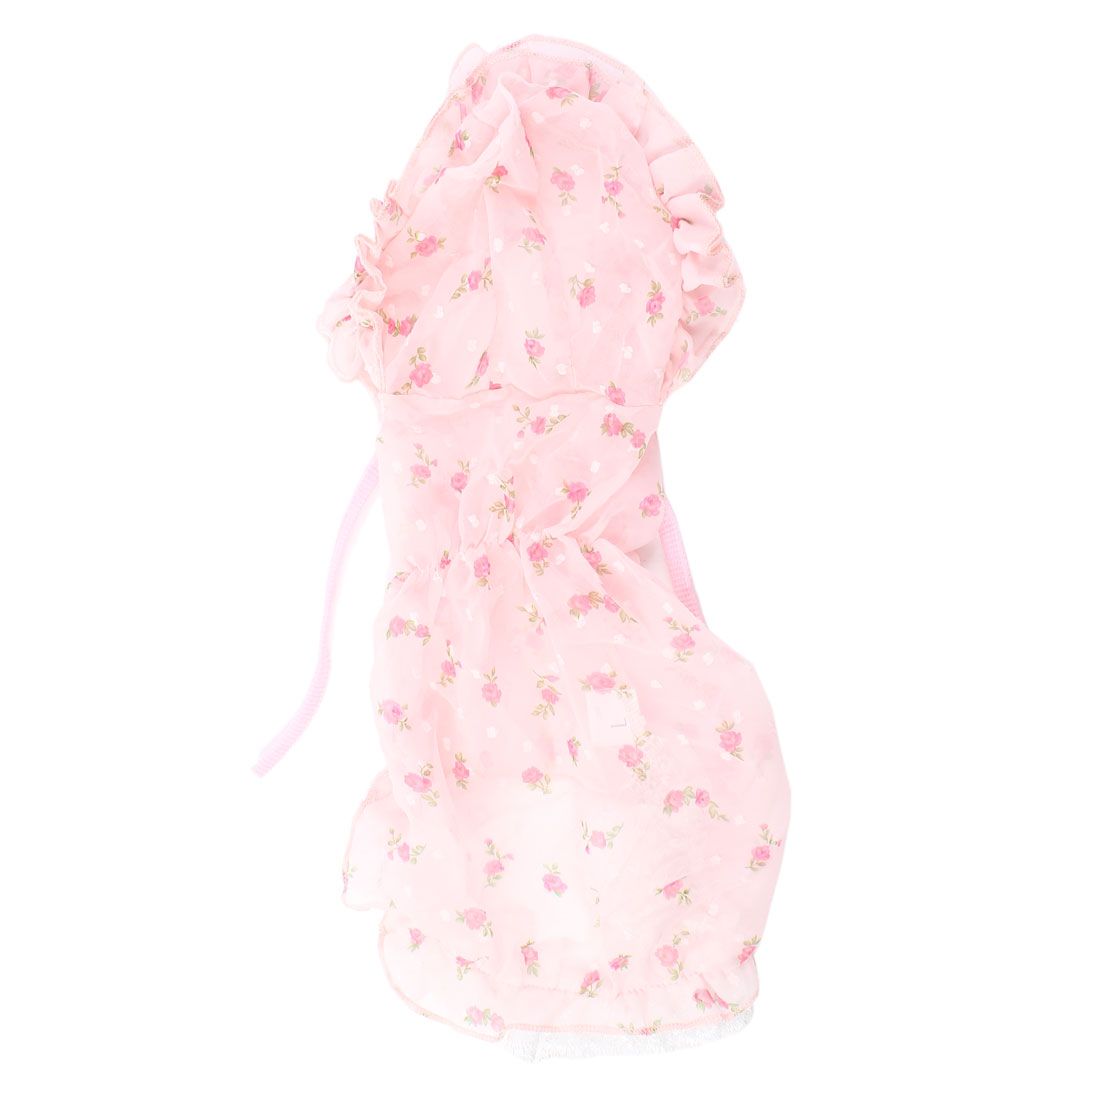 Ruffled Edge Flower Pattern Pet Dog Doggy Dress Apparel Pale Pink XS